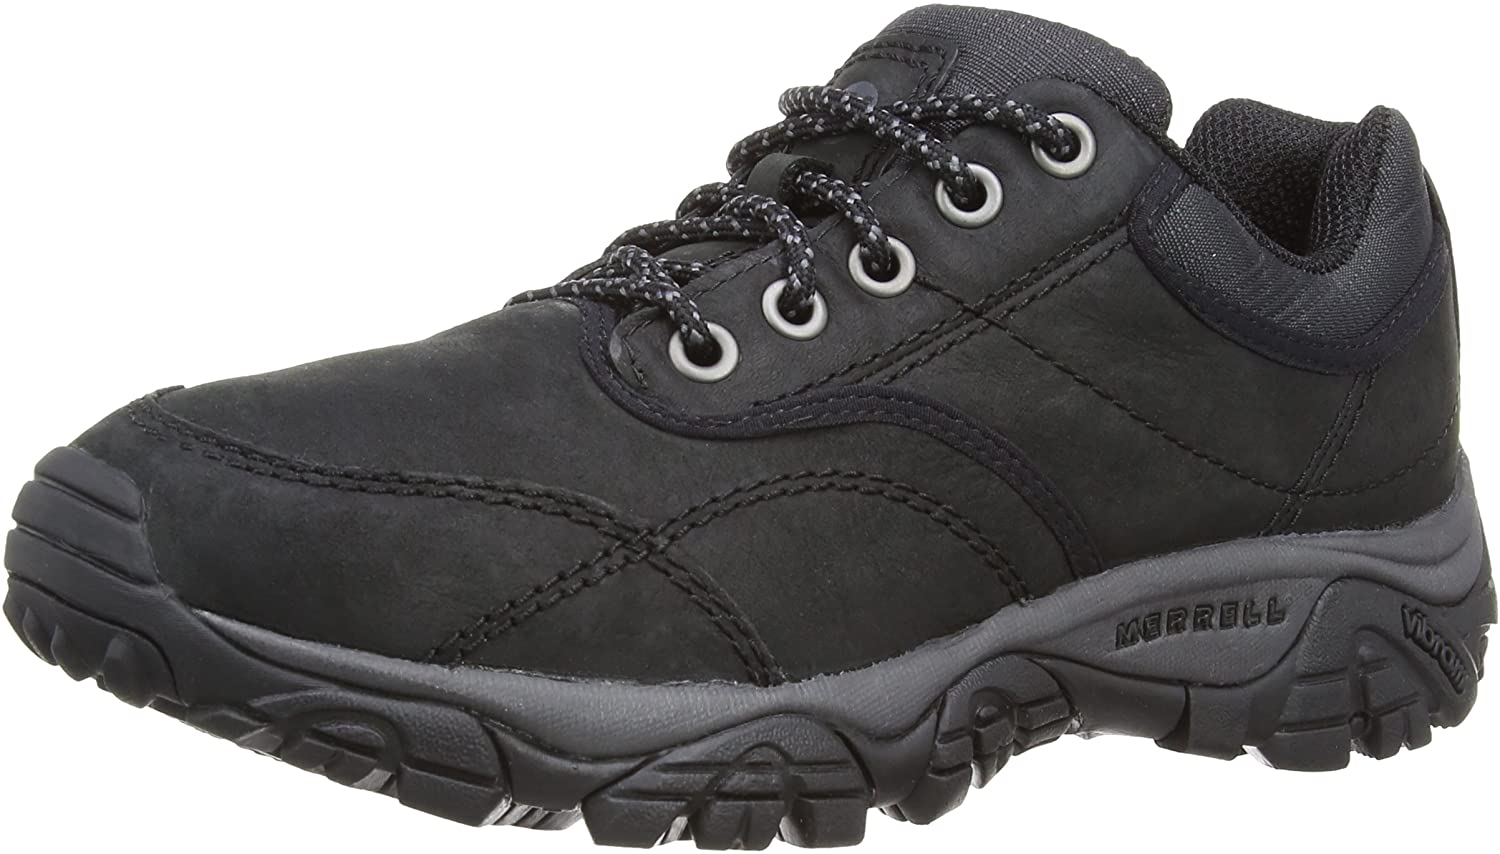 Merrell Men_s Moab Rover Hiking Shoes  Durable and Comfortable in Sophisticated Leather Upper and Abrasion Resistant Fabric